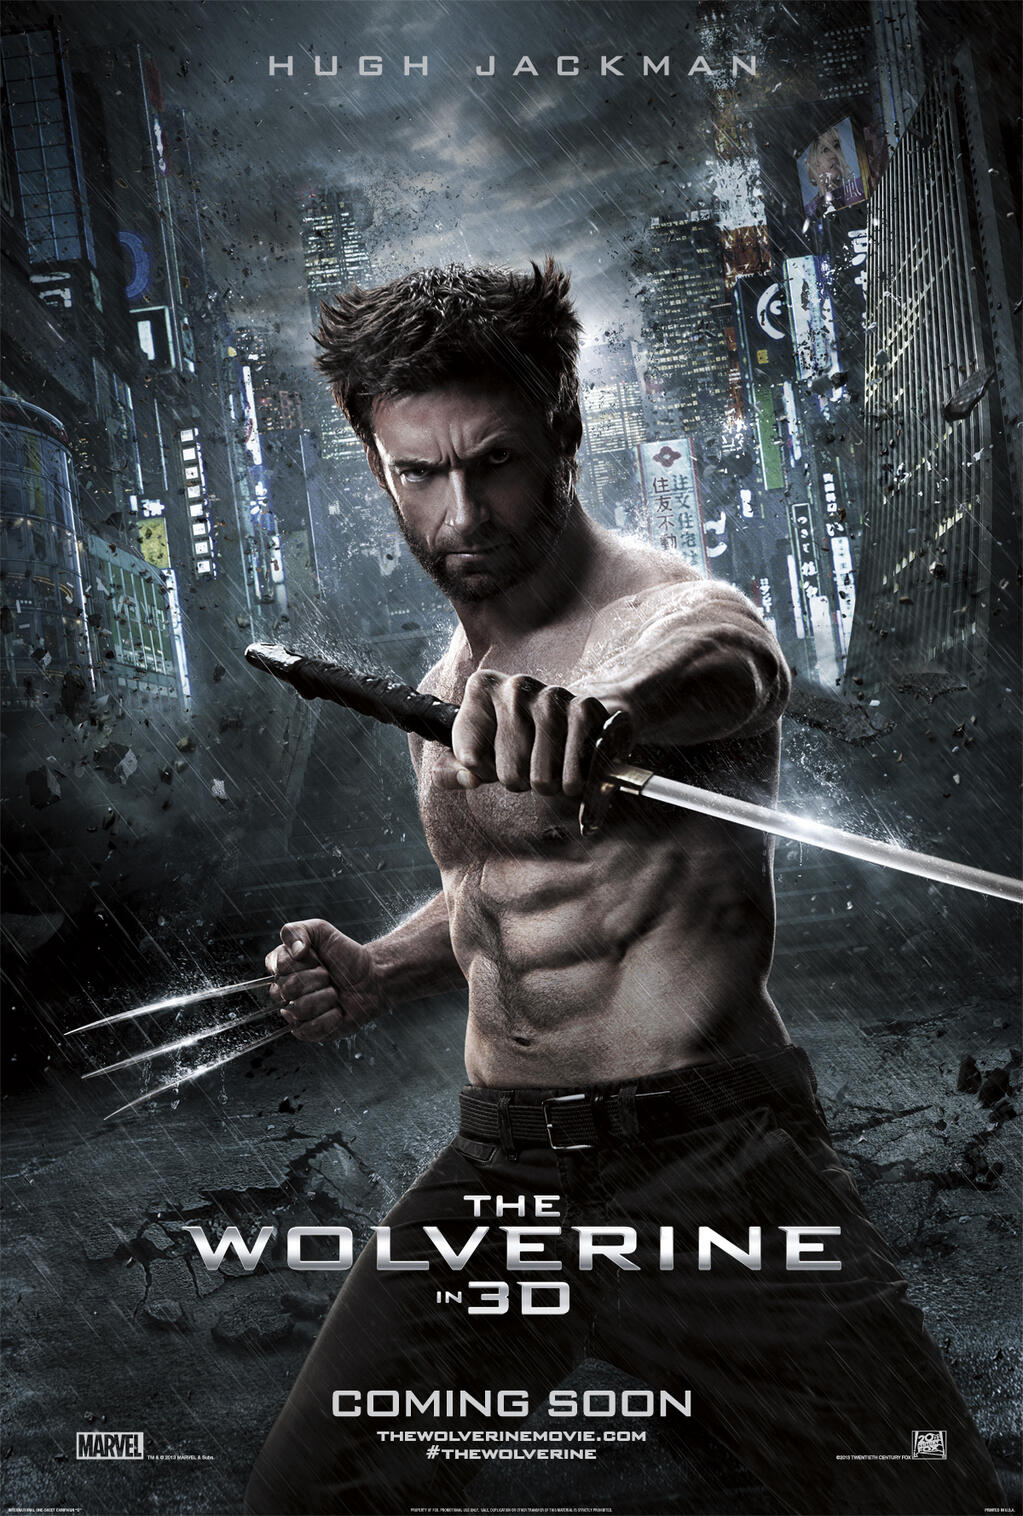 The Wolverine International Movie Poster 2 Domestic And International Trailers For The Wolverine Released